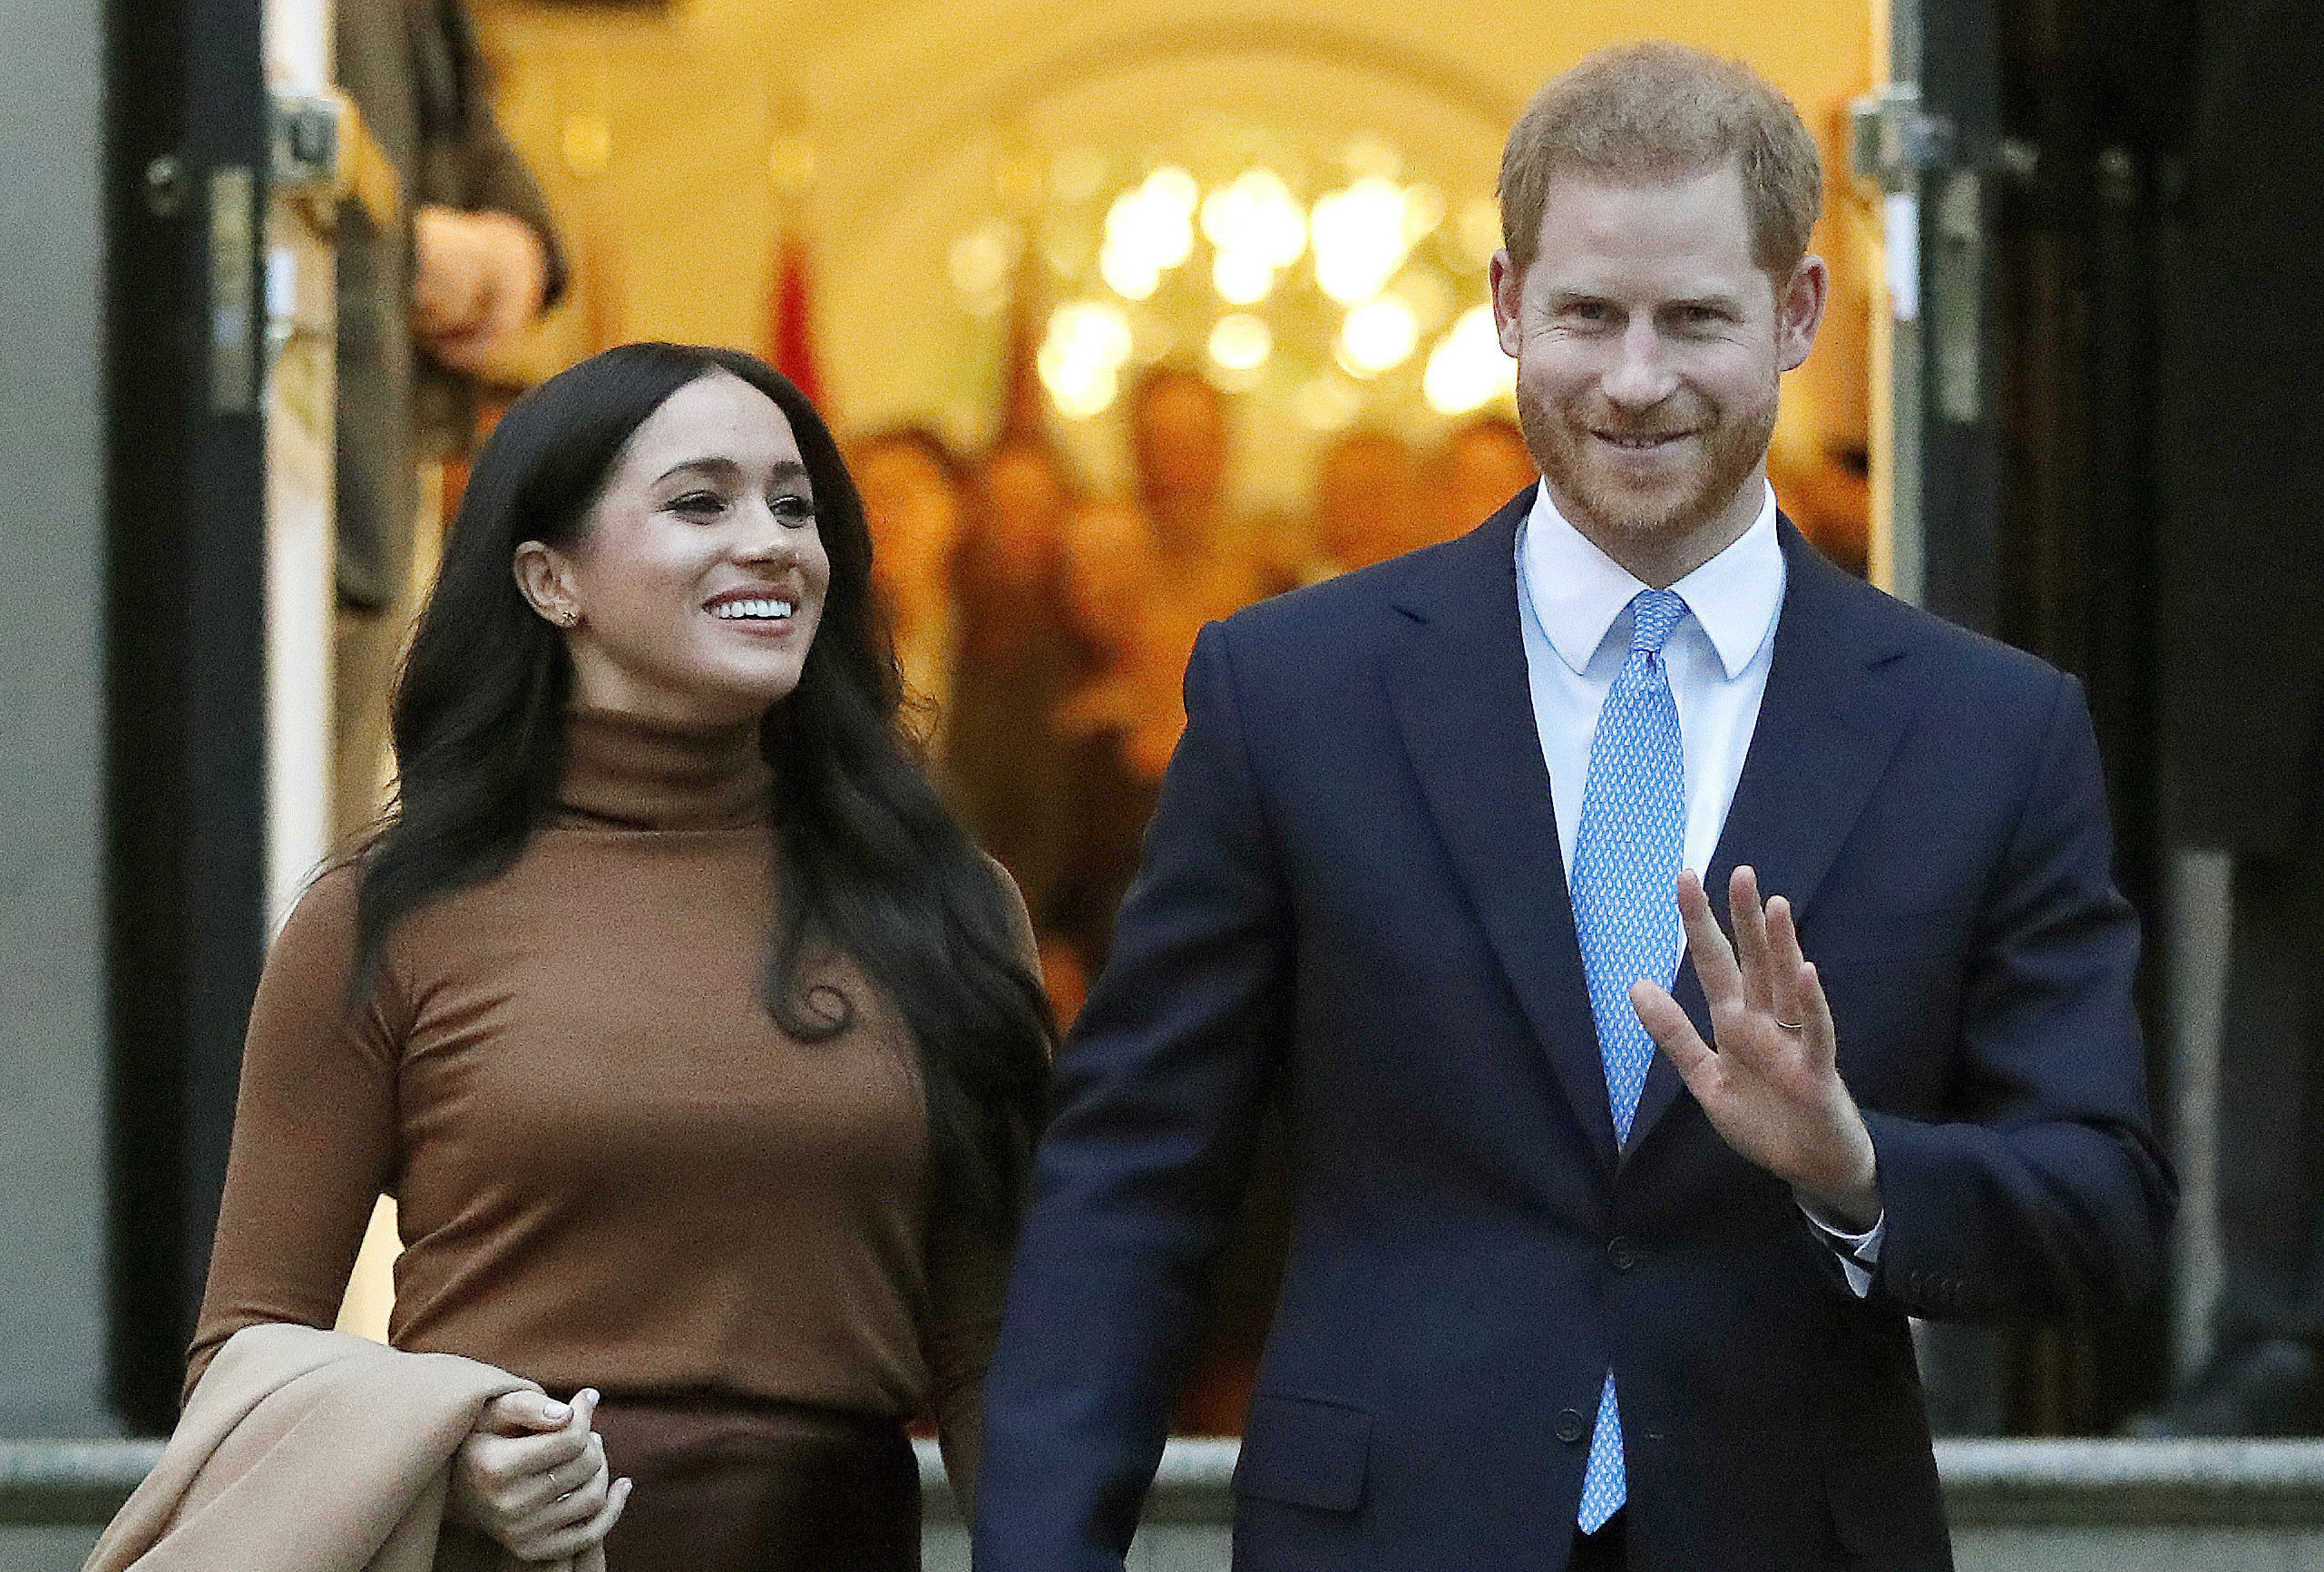 Prince Harry And Meghan Markle Spend First American Thanksgiving In Their New Home